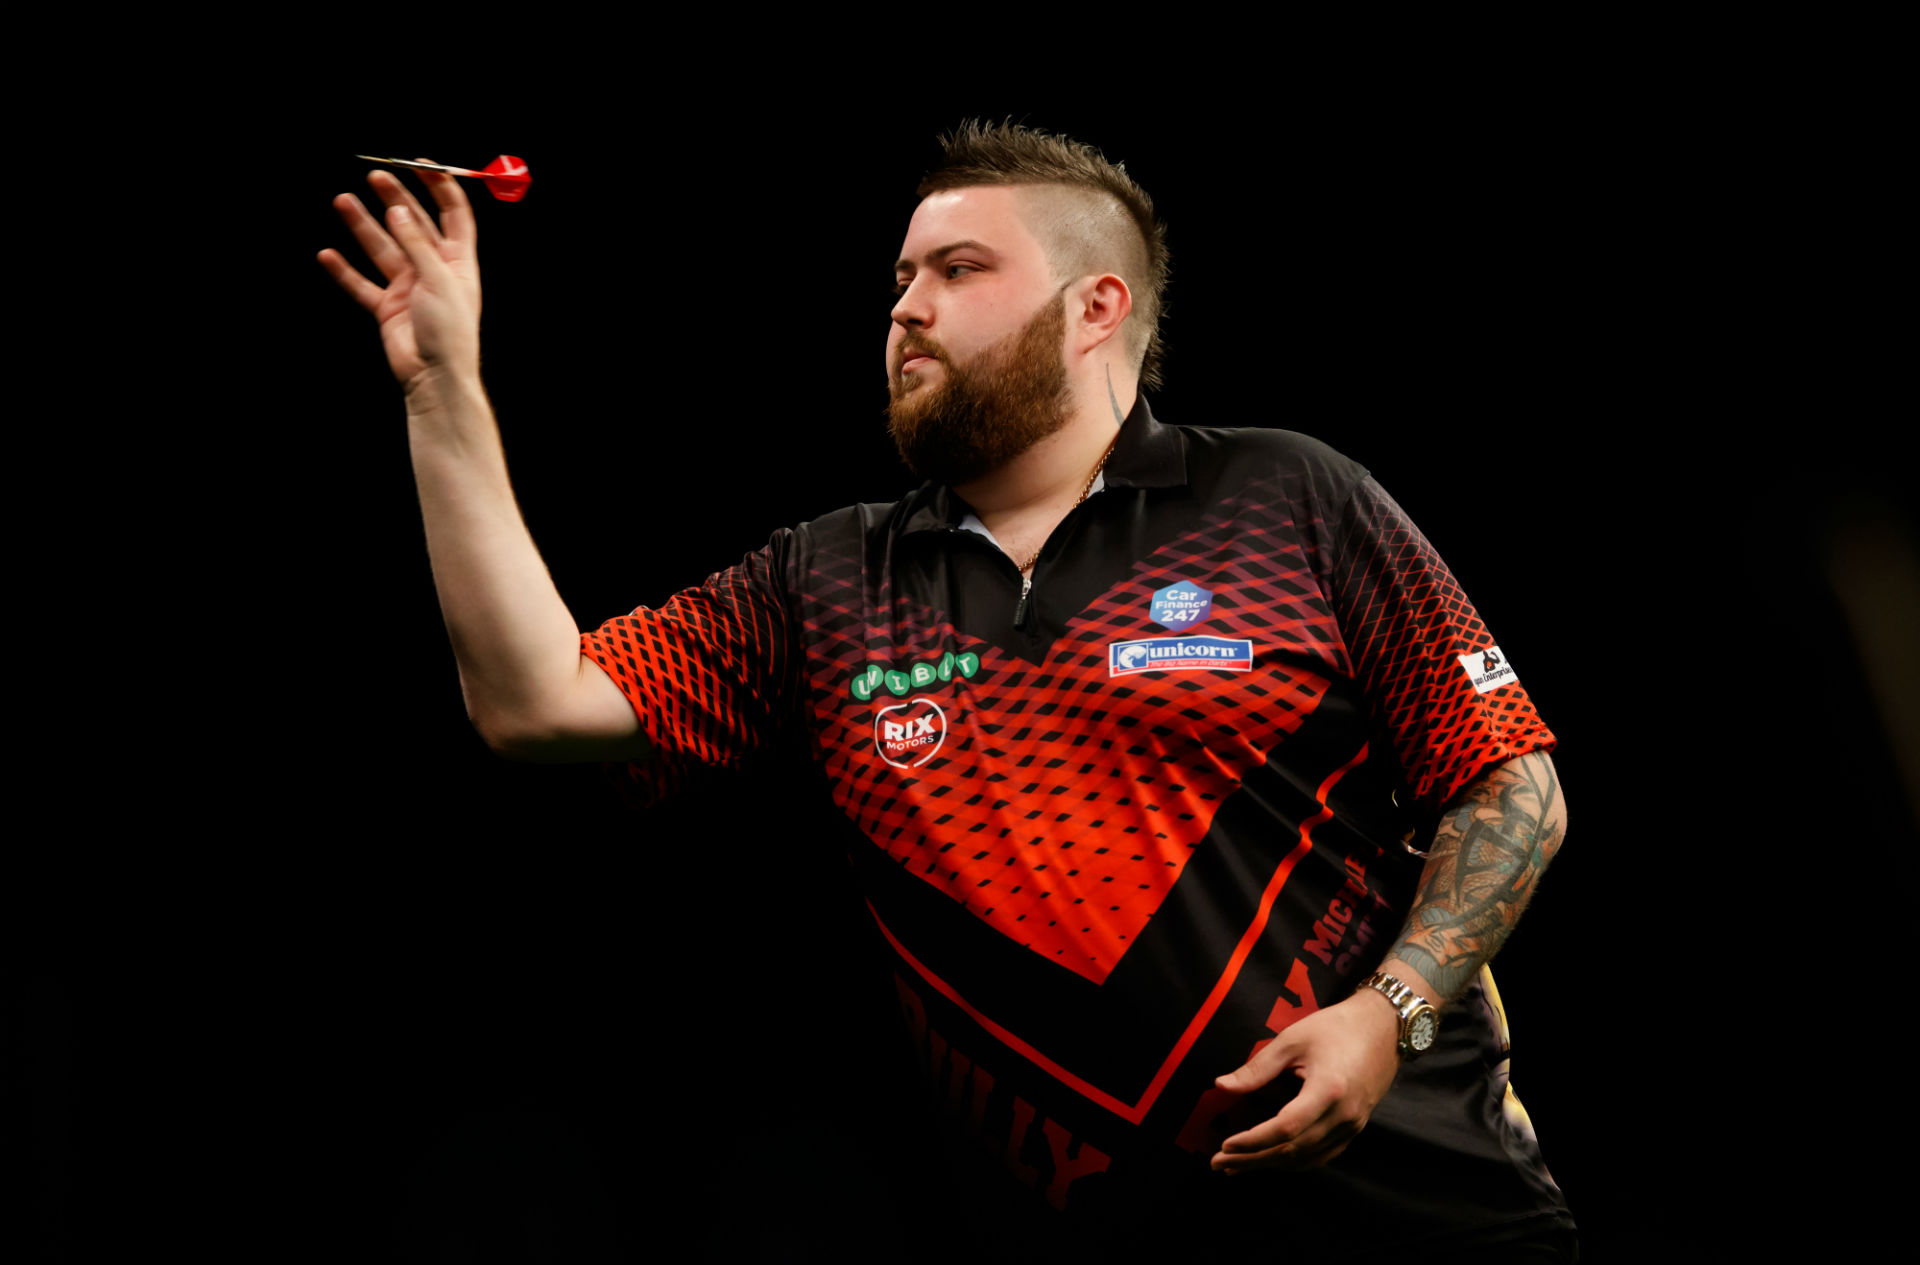 The Michael Smith World Darts Championship bet that keeps